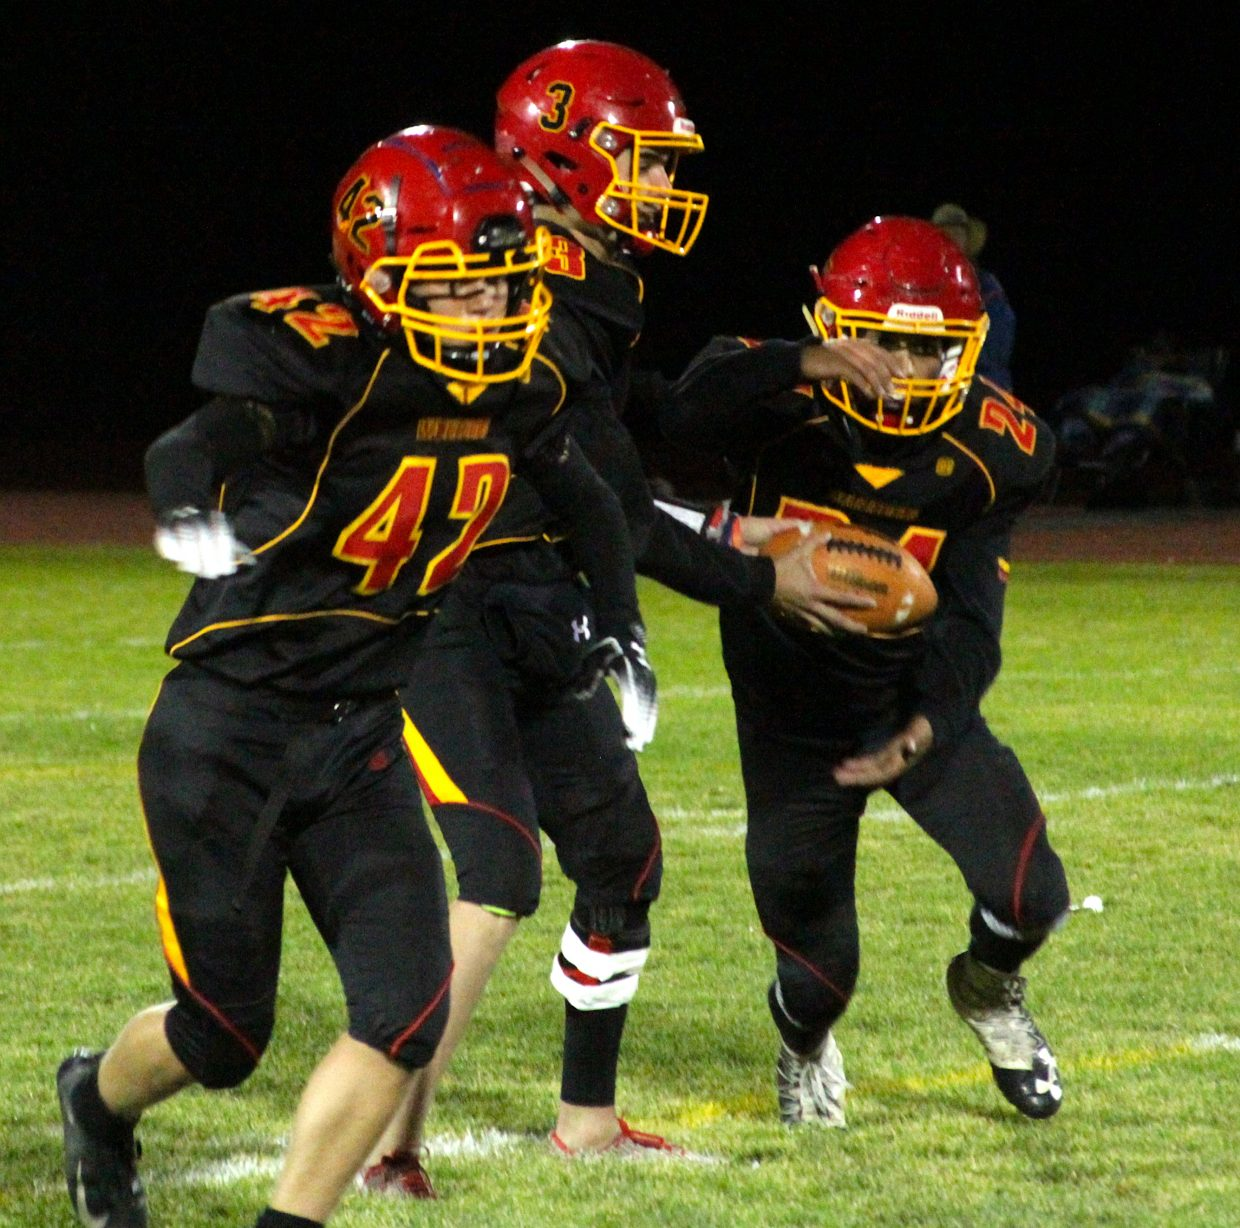 Whittell quarterback Trent Dingman hands off to Isaiah Womack as Jack White (42) prepares to lead block.